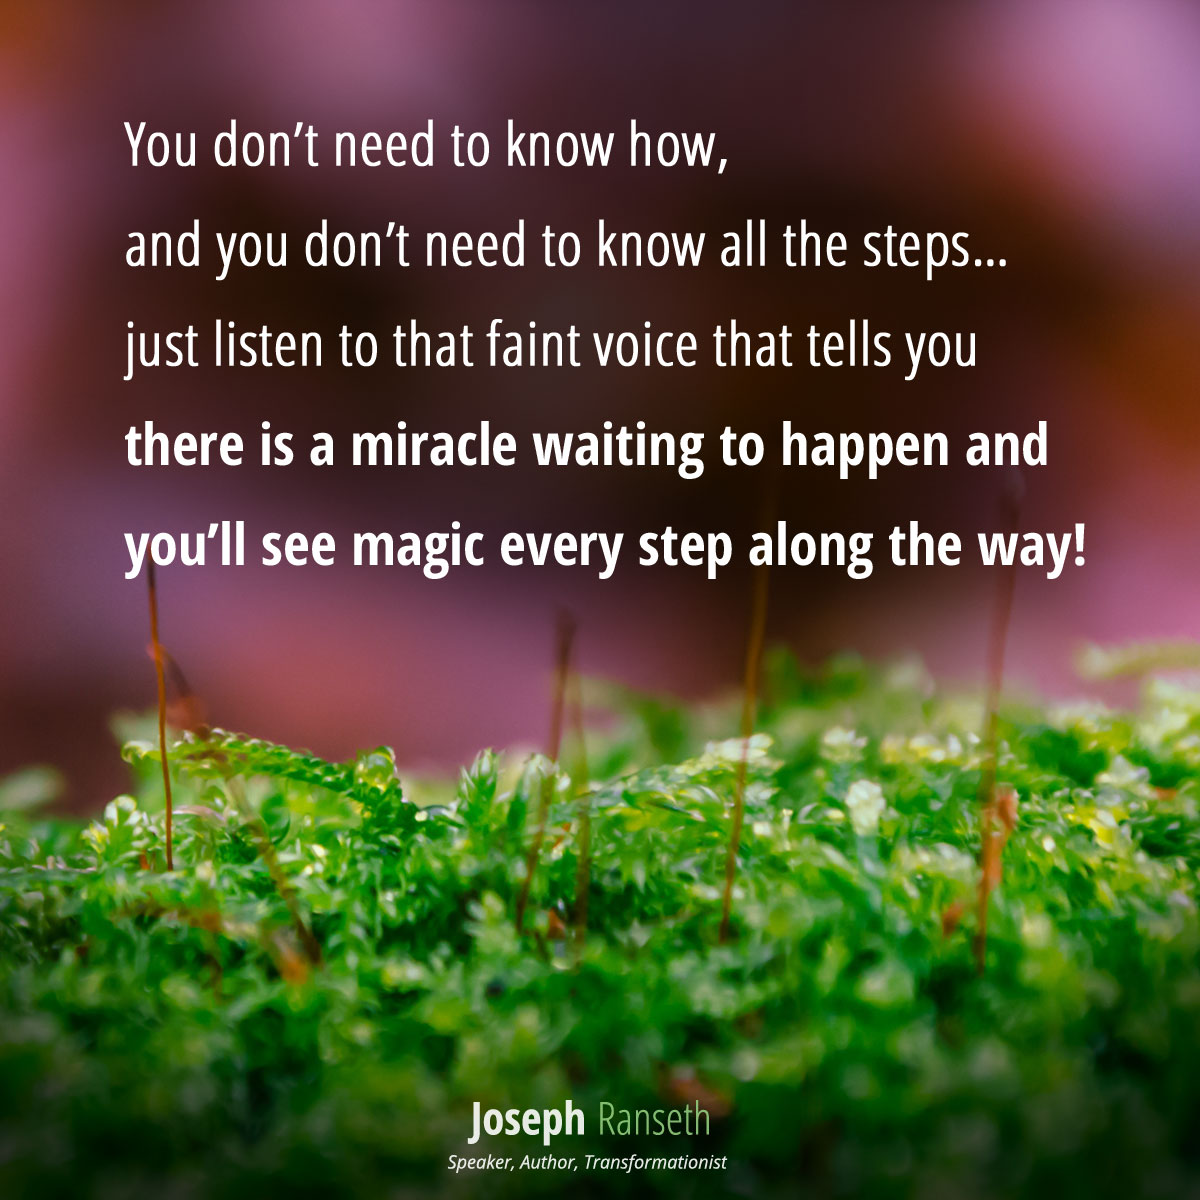 You don't need to know how, and you don't need to know all the steps… just listen to that faint voice that tells you there is a miracle waiting to happen and you'll see magic every step along the way!